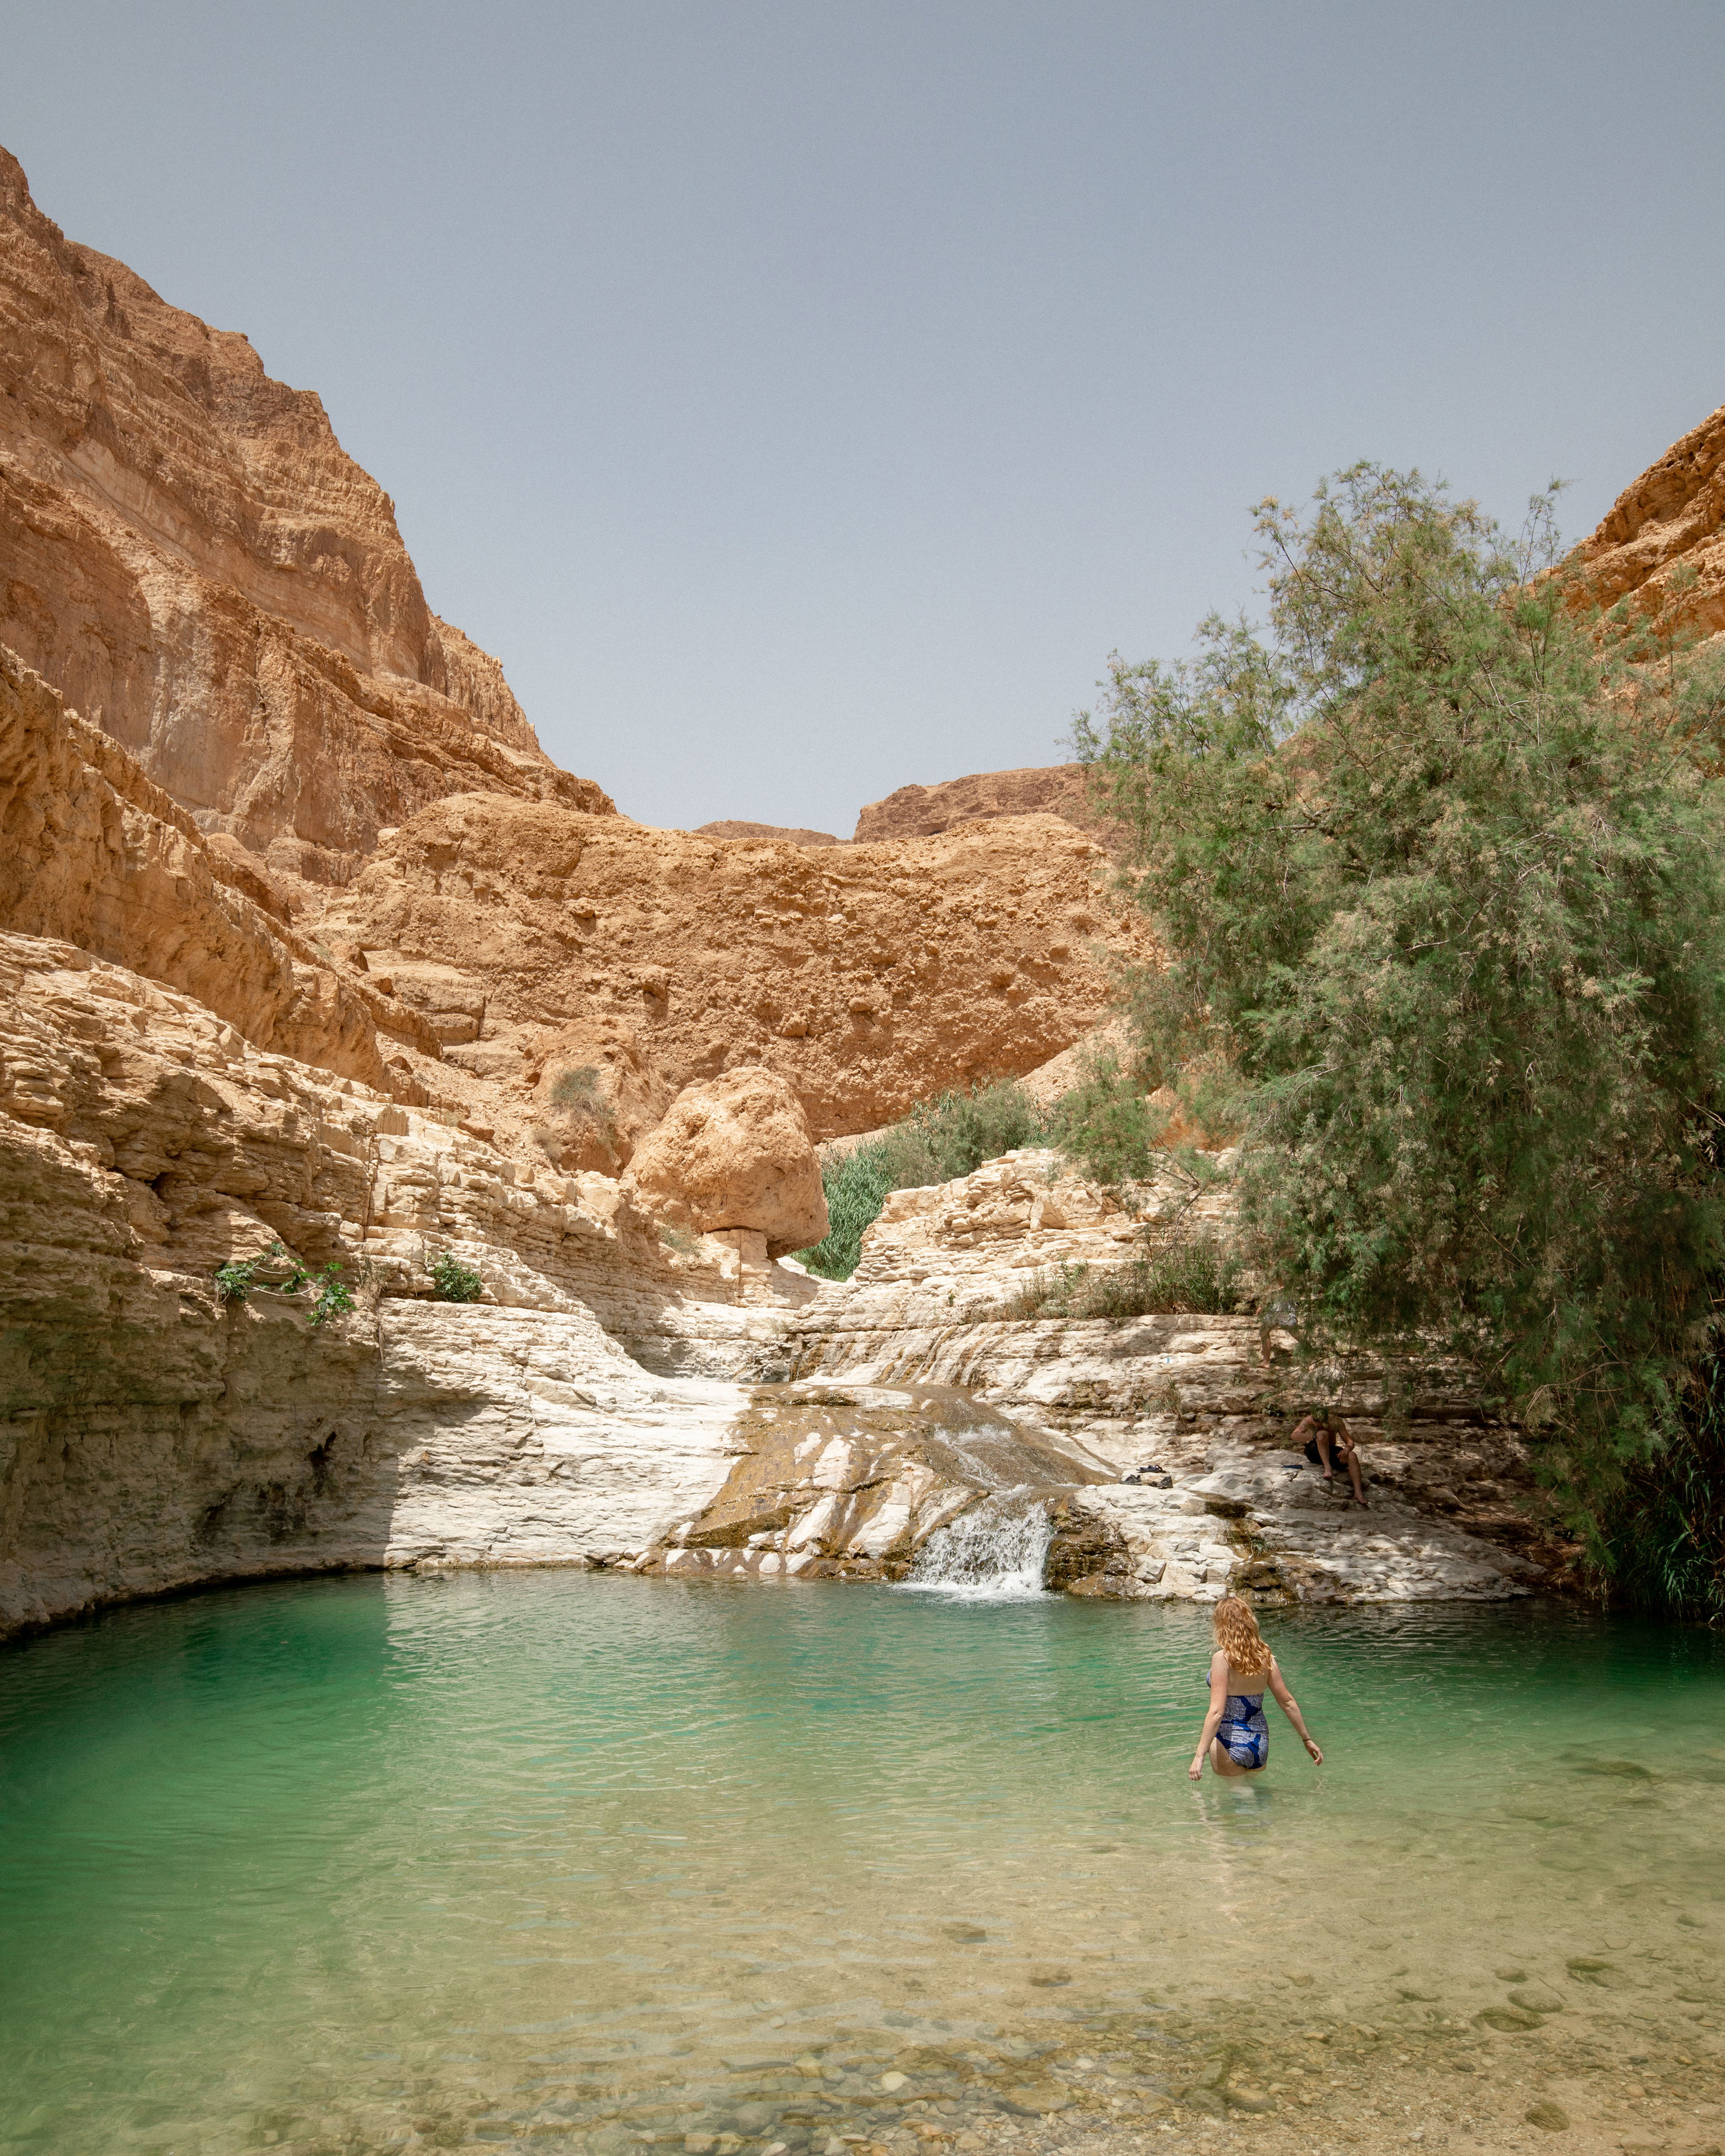 The upper pool at Wadi Arugot